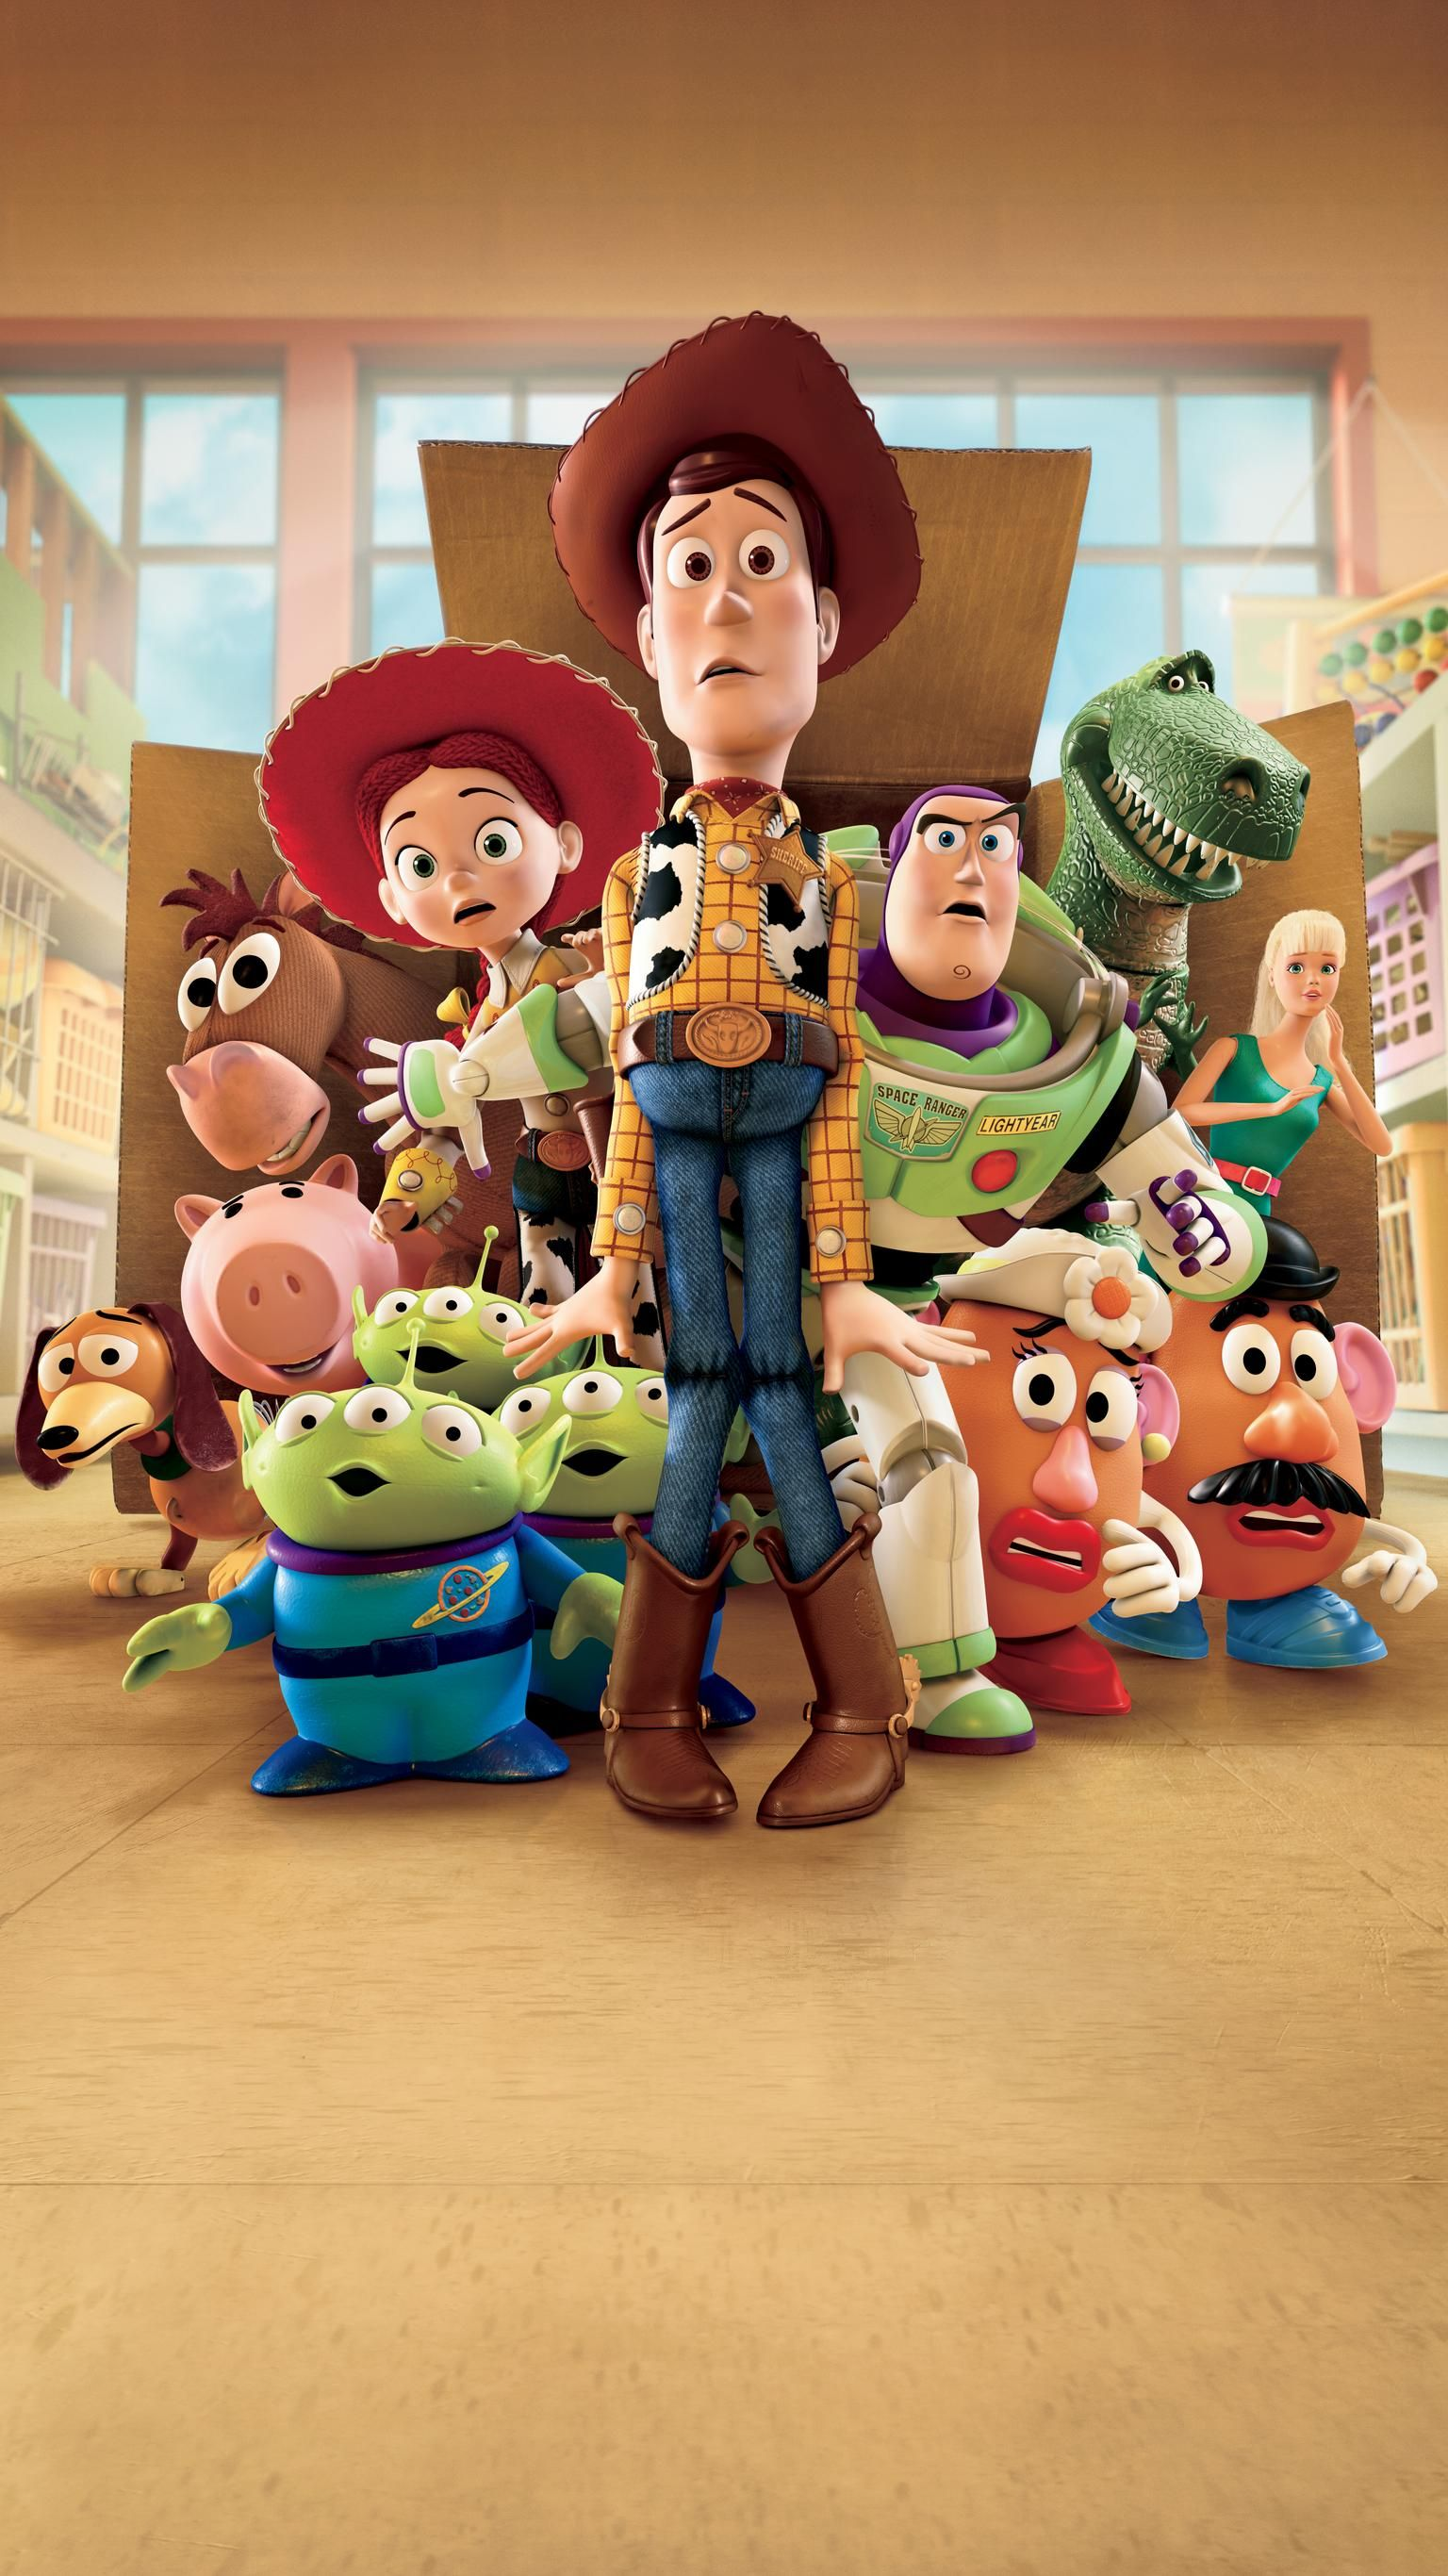 Toy Story 3 (2010) Phone Wallpaper Toy story 3 movie